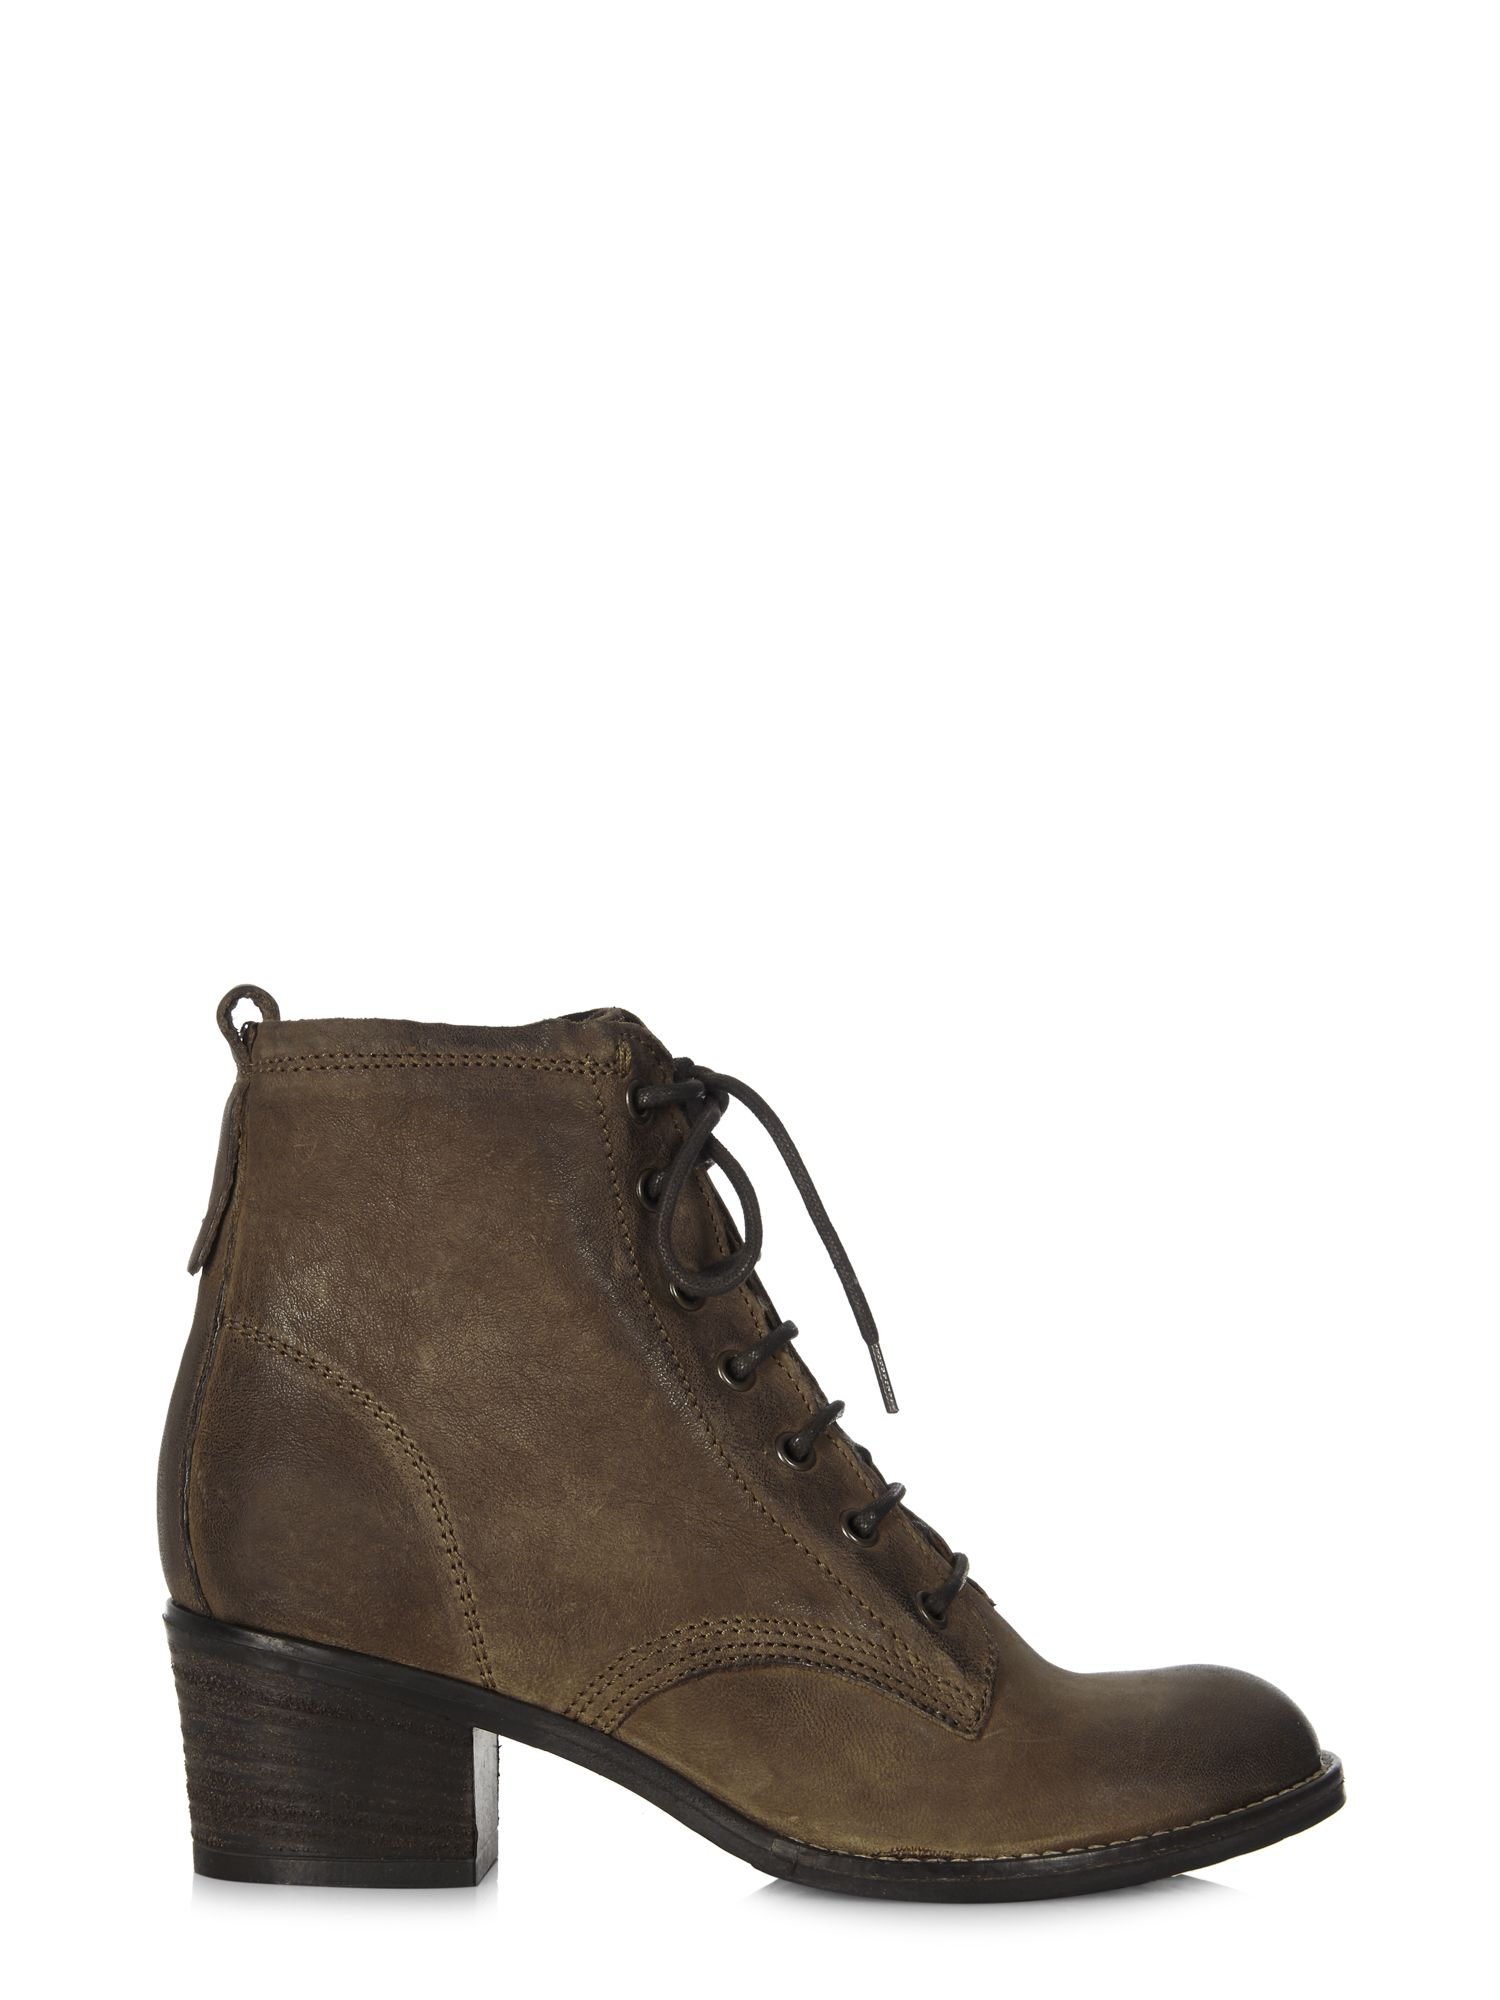 Cara Cara Sabine ankle boot, Brown